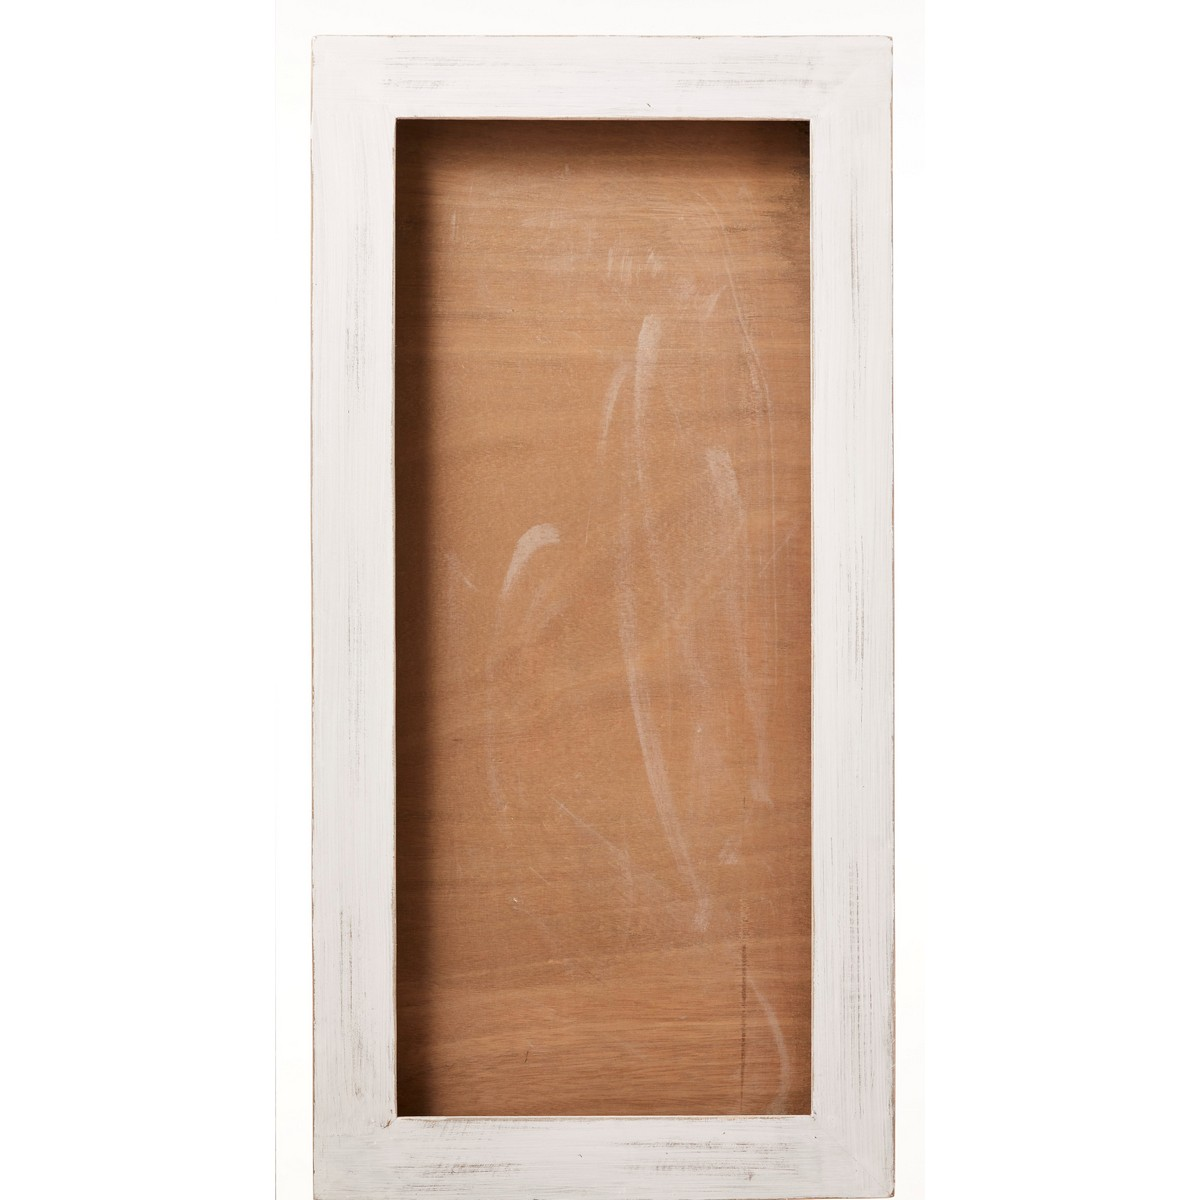 クレイ/Natural wood frame XL 88L44W6H WHITE/680-038-102【01】【取寄】